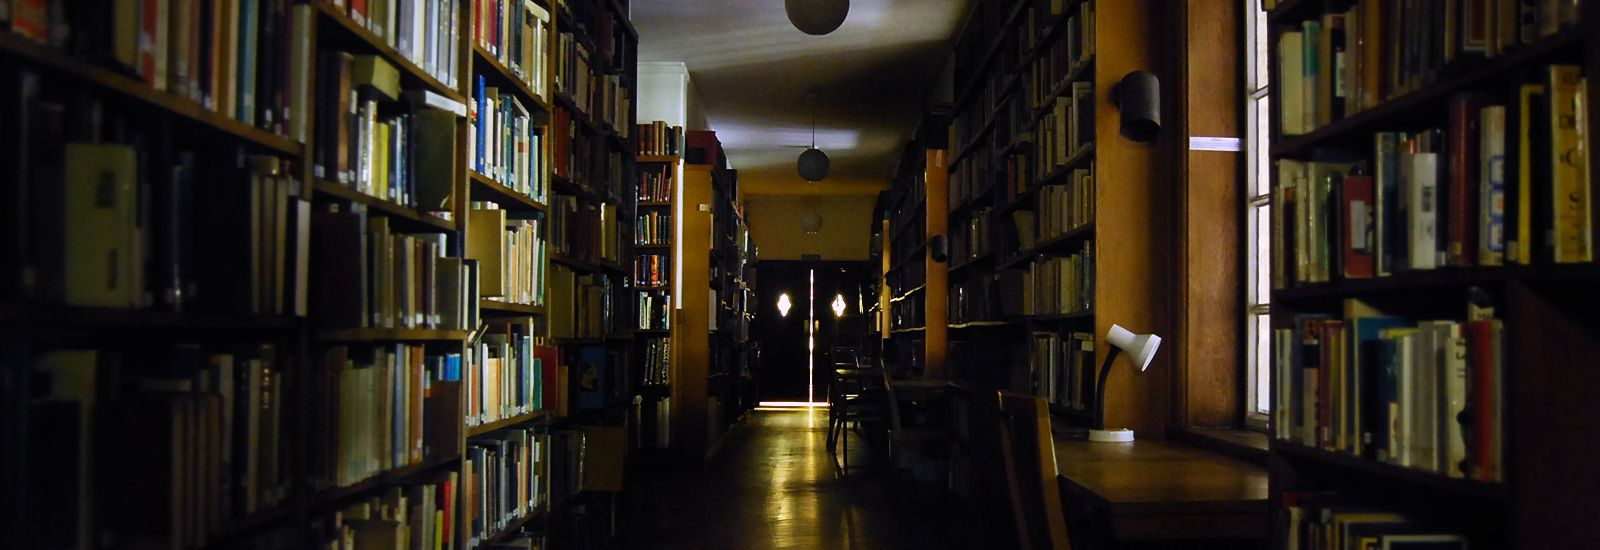 Inside a dark library with sunlight coming through the windows